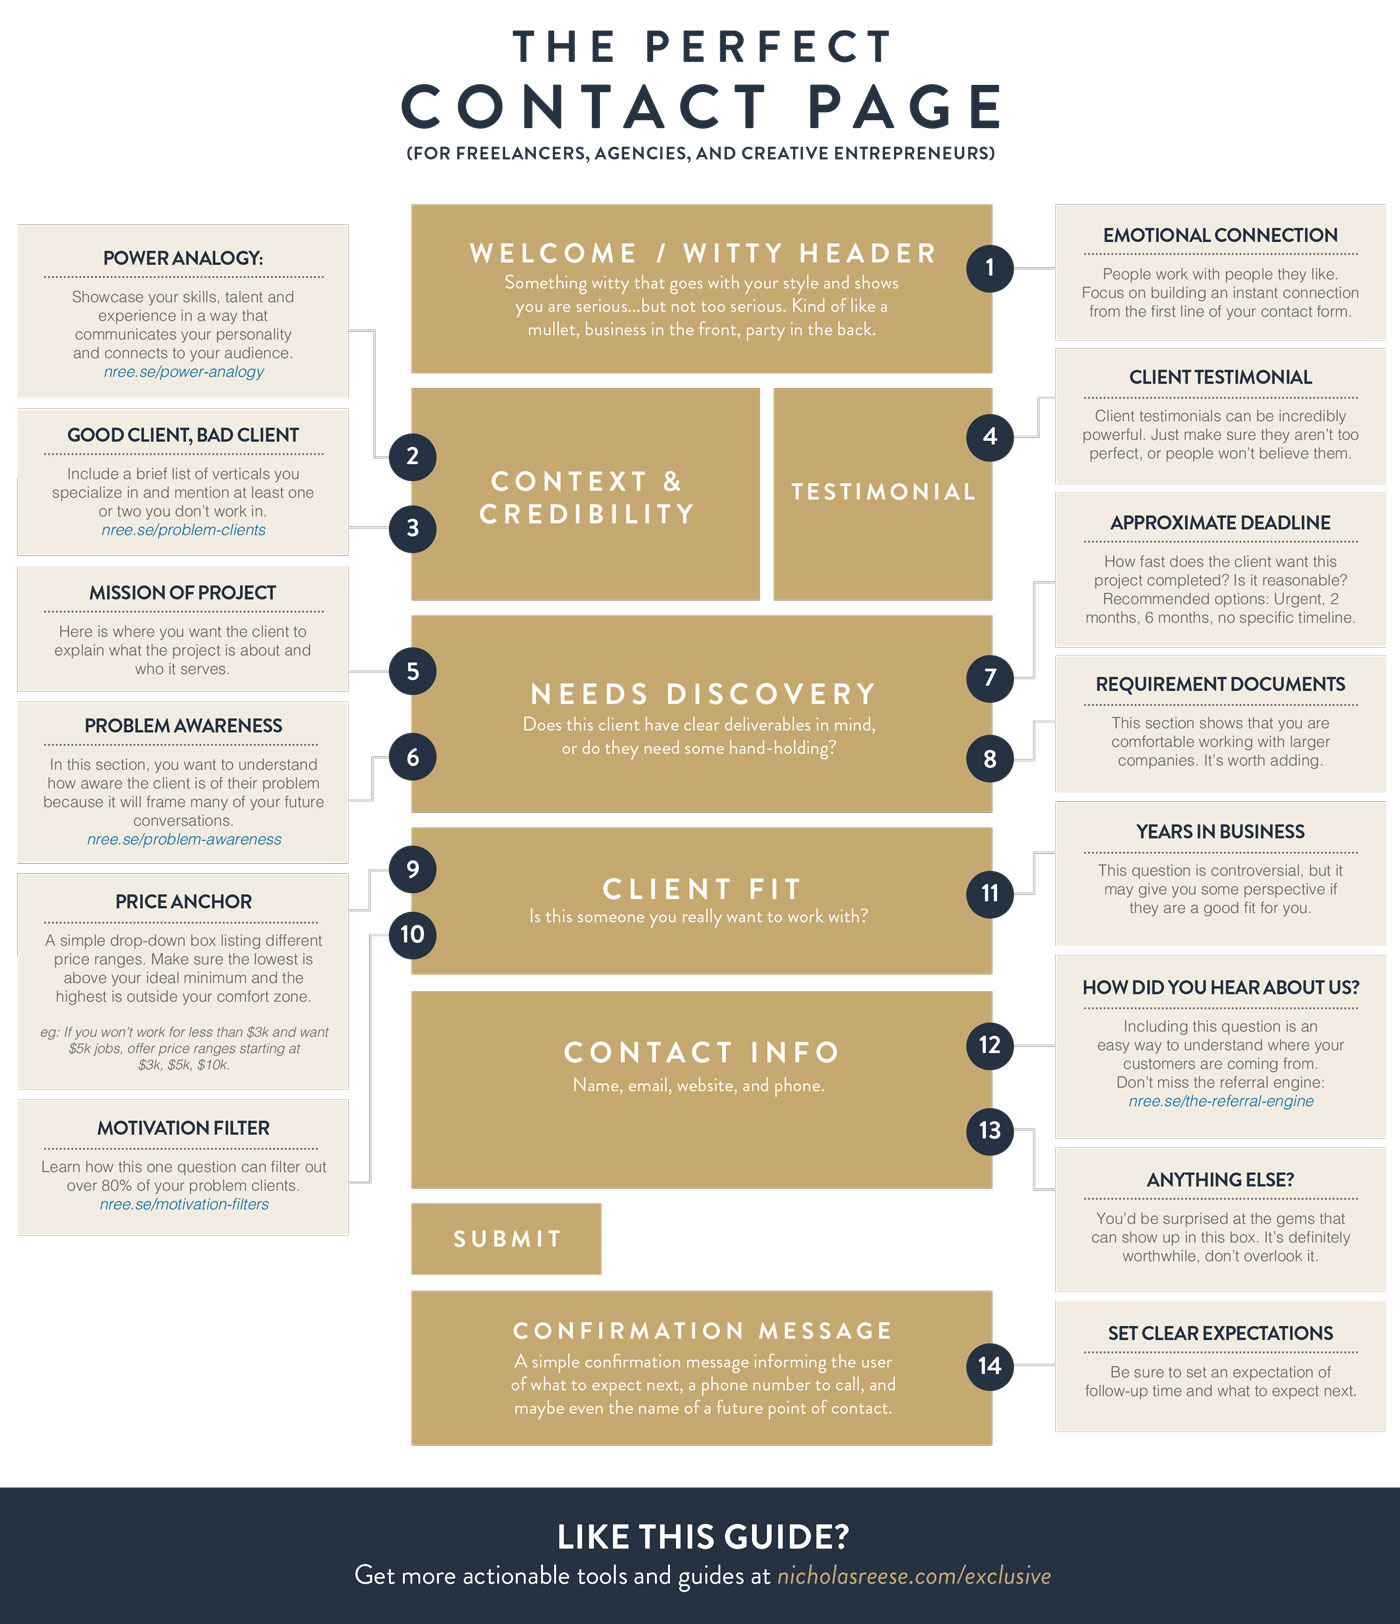 Business Contact: The Perfect Contact Page For Entrepreneurs {Infographic